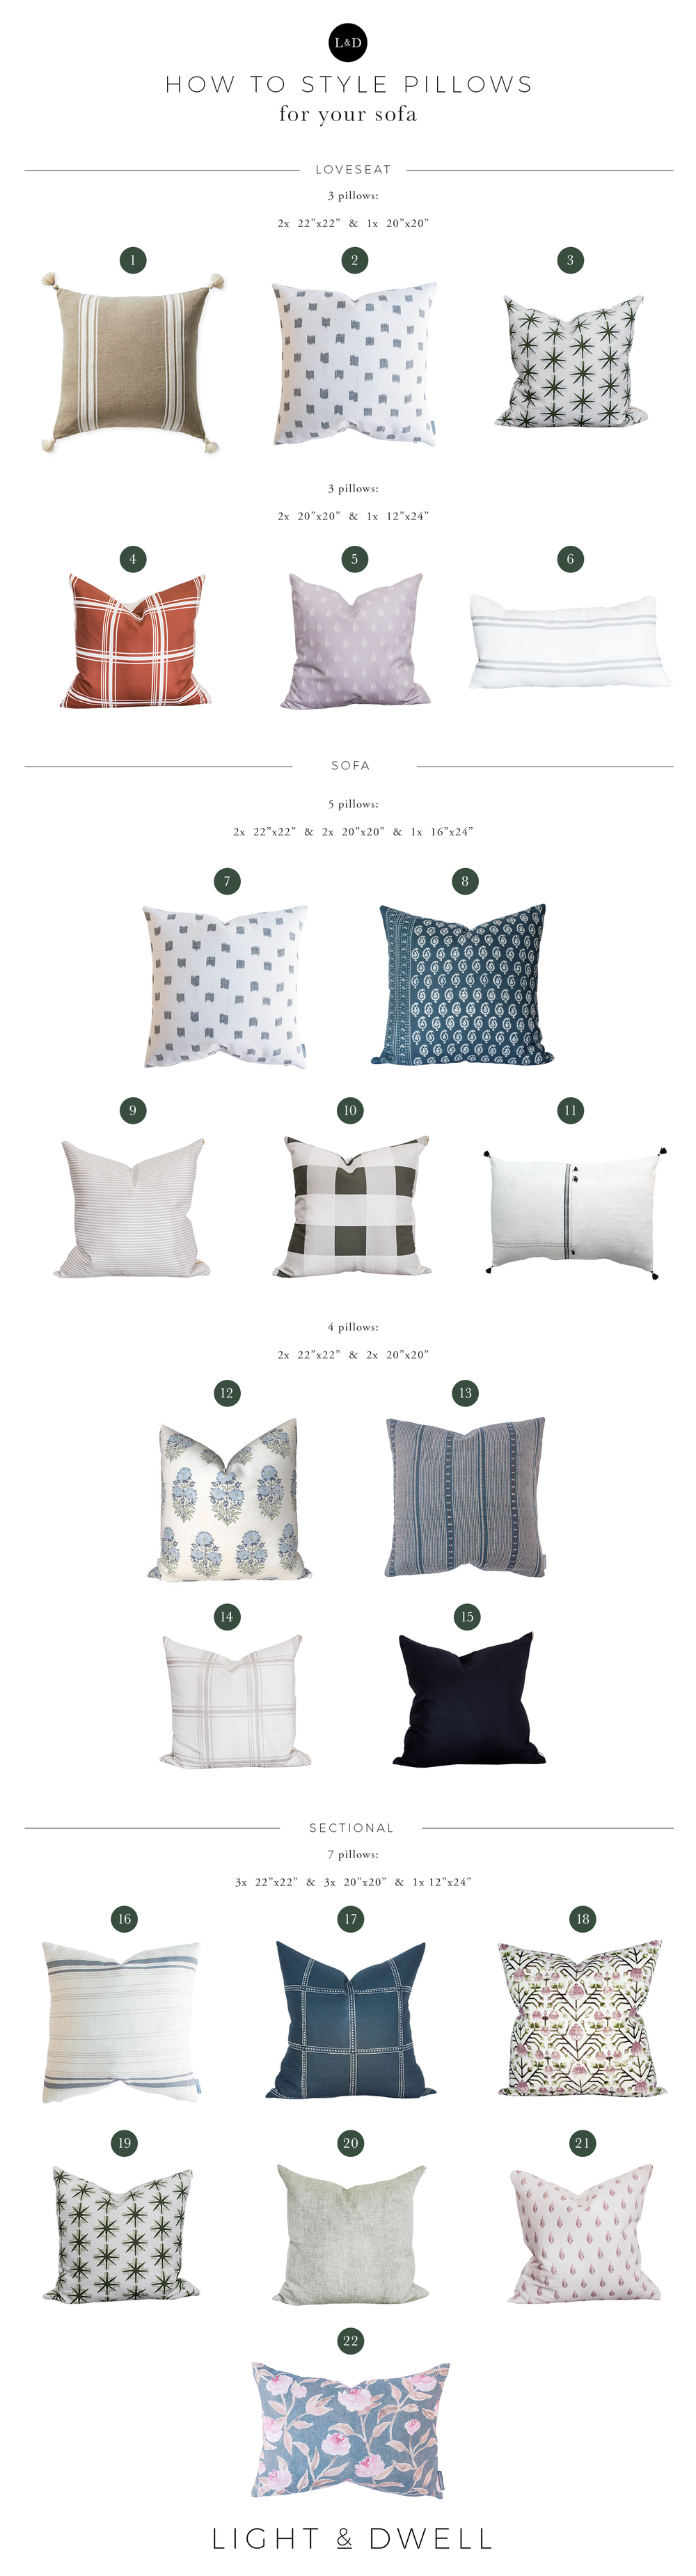 L+D_howtostylepillows_foryoursofa.png